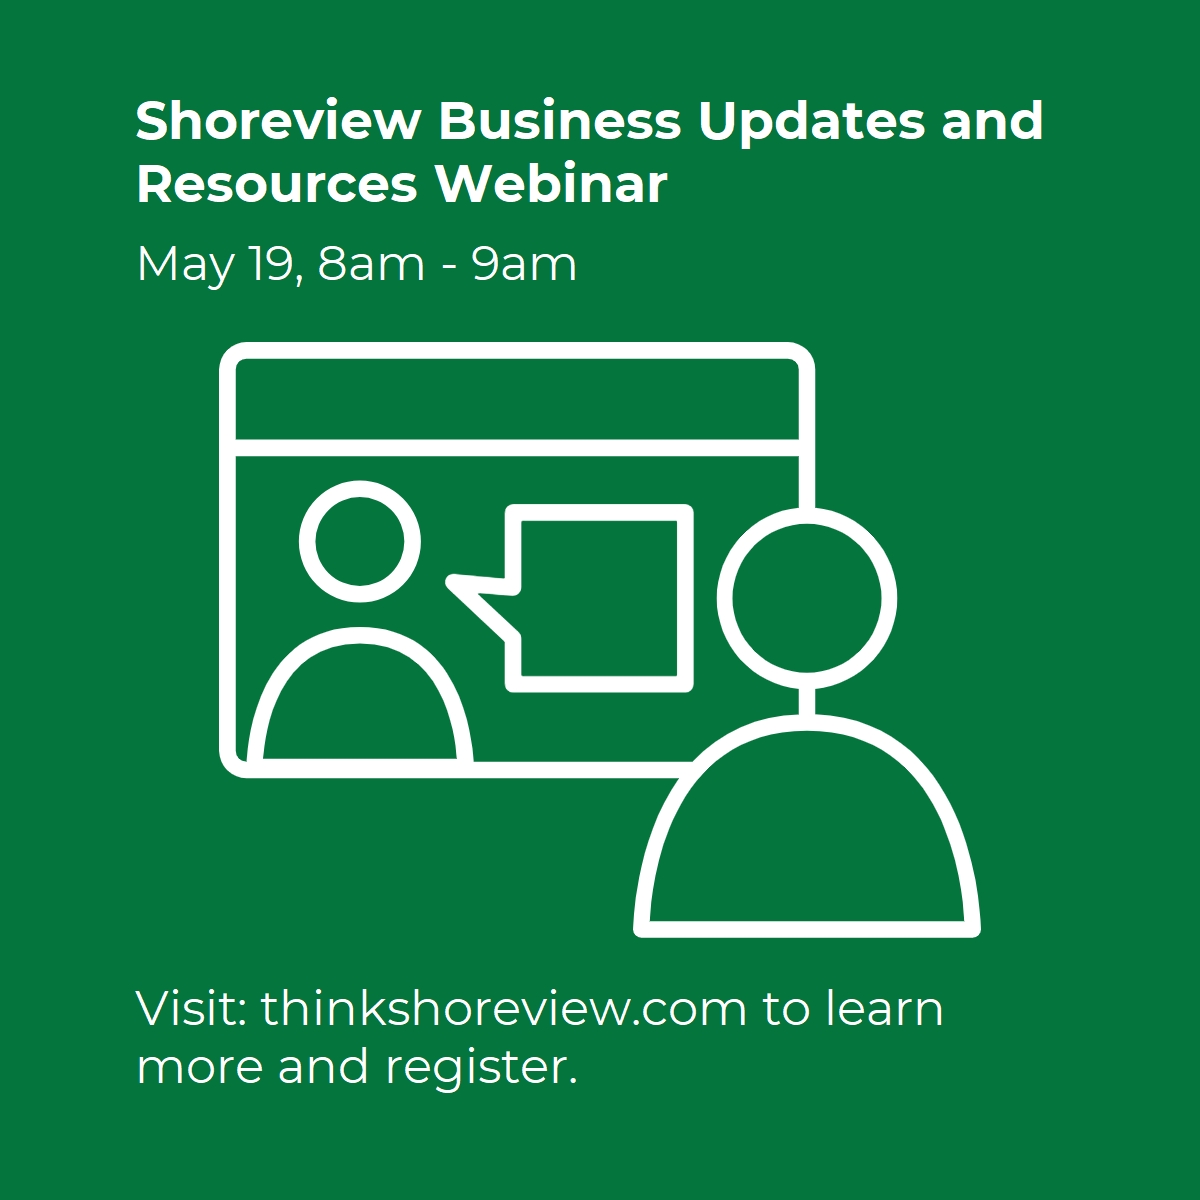 Shoreview Virtual Business Resources and Updates 5/19 Main Photo